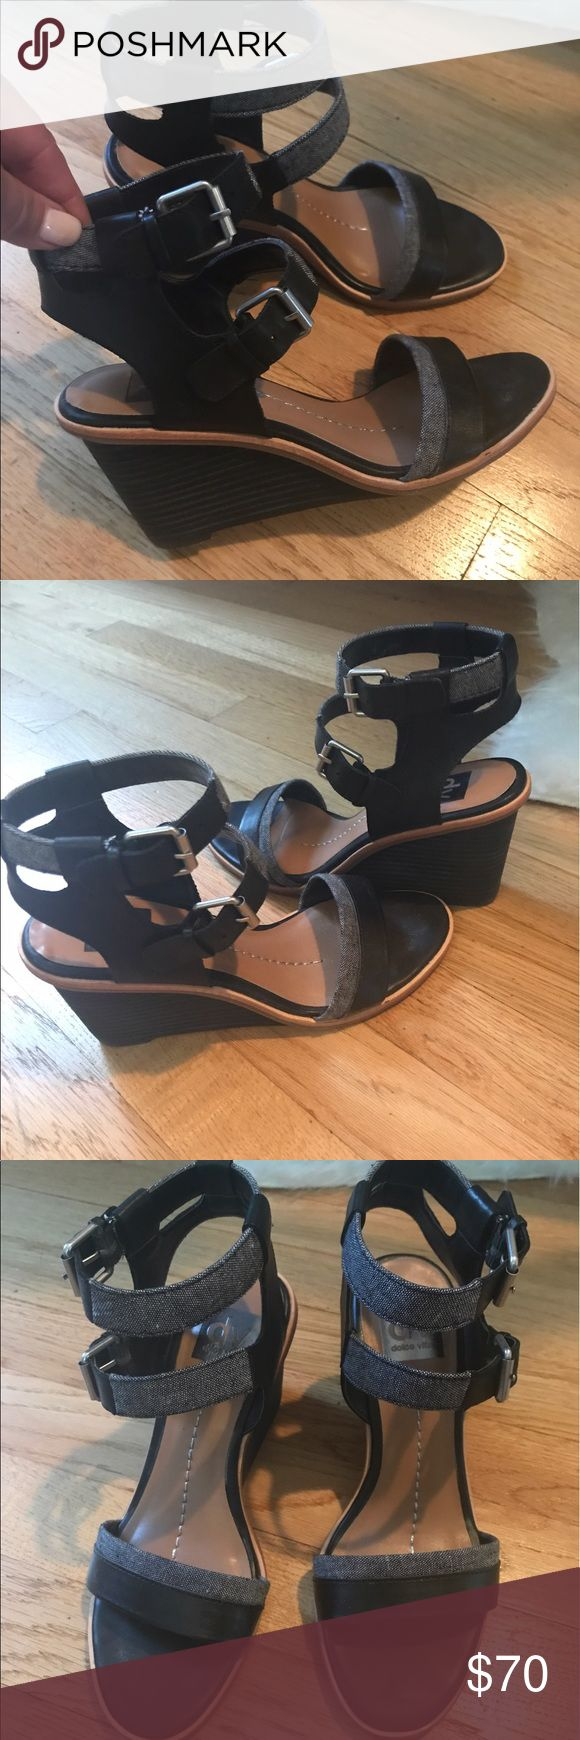 DV dolce vita sandals, size 7.5 Euc, worn twice, black leather with little strips grey jeans DV by Dolce Vita Shoes Sandals